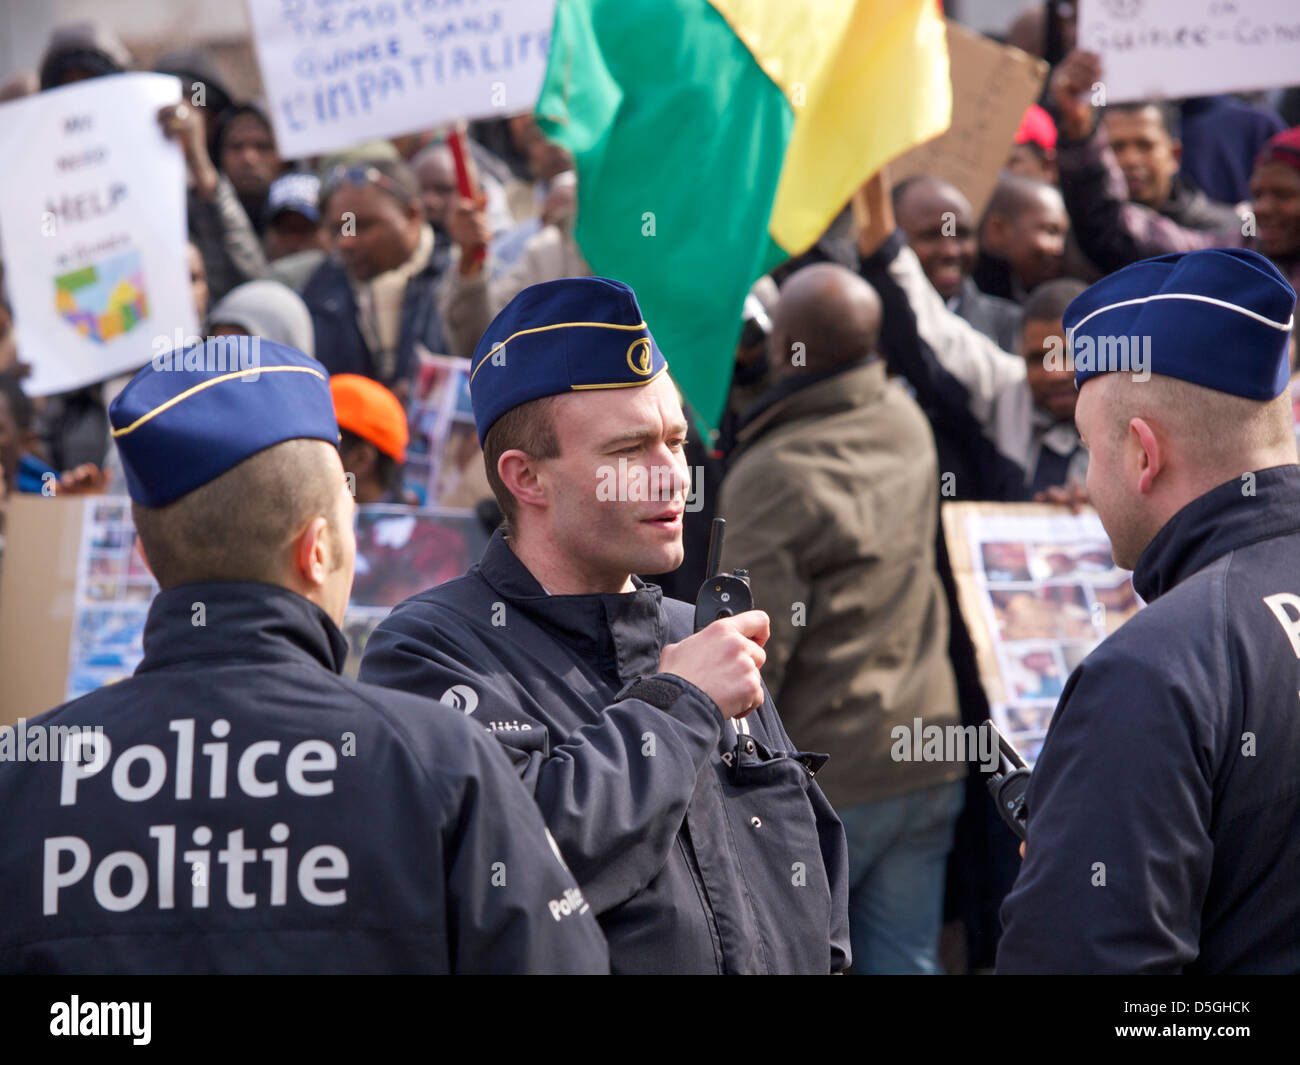 Policemen talking to each other at protest against dictator Alpha Conde of Guinea. Brussels, Belgium - Stock Image